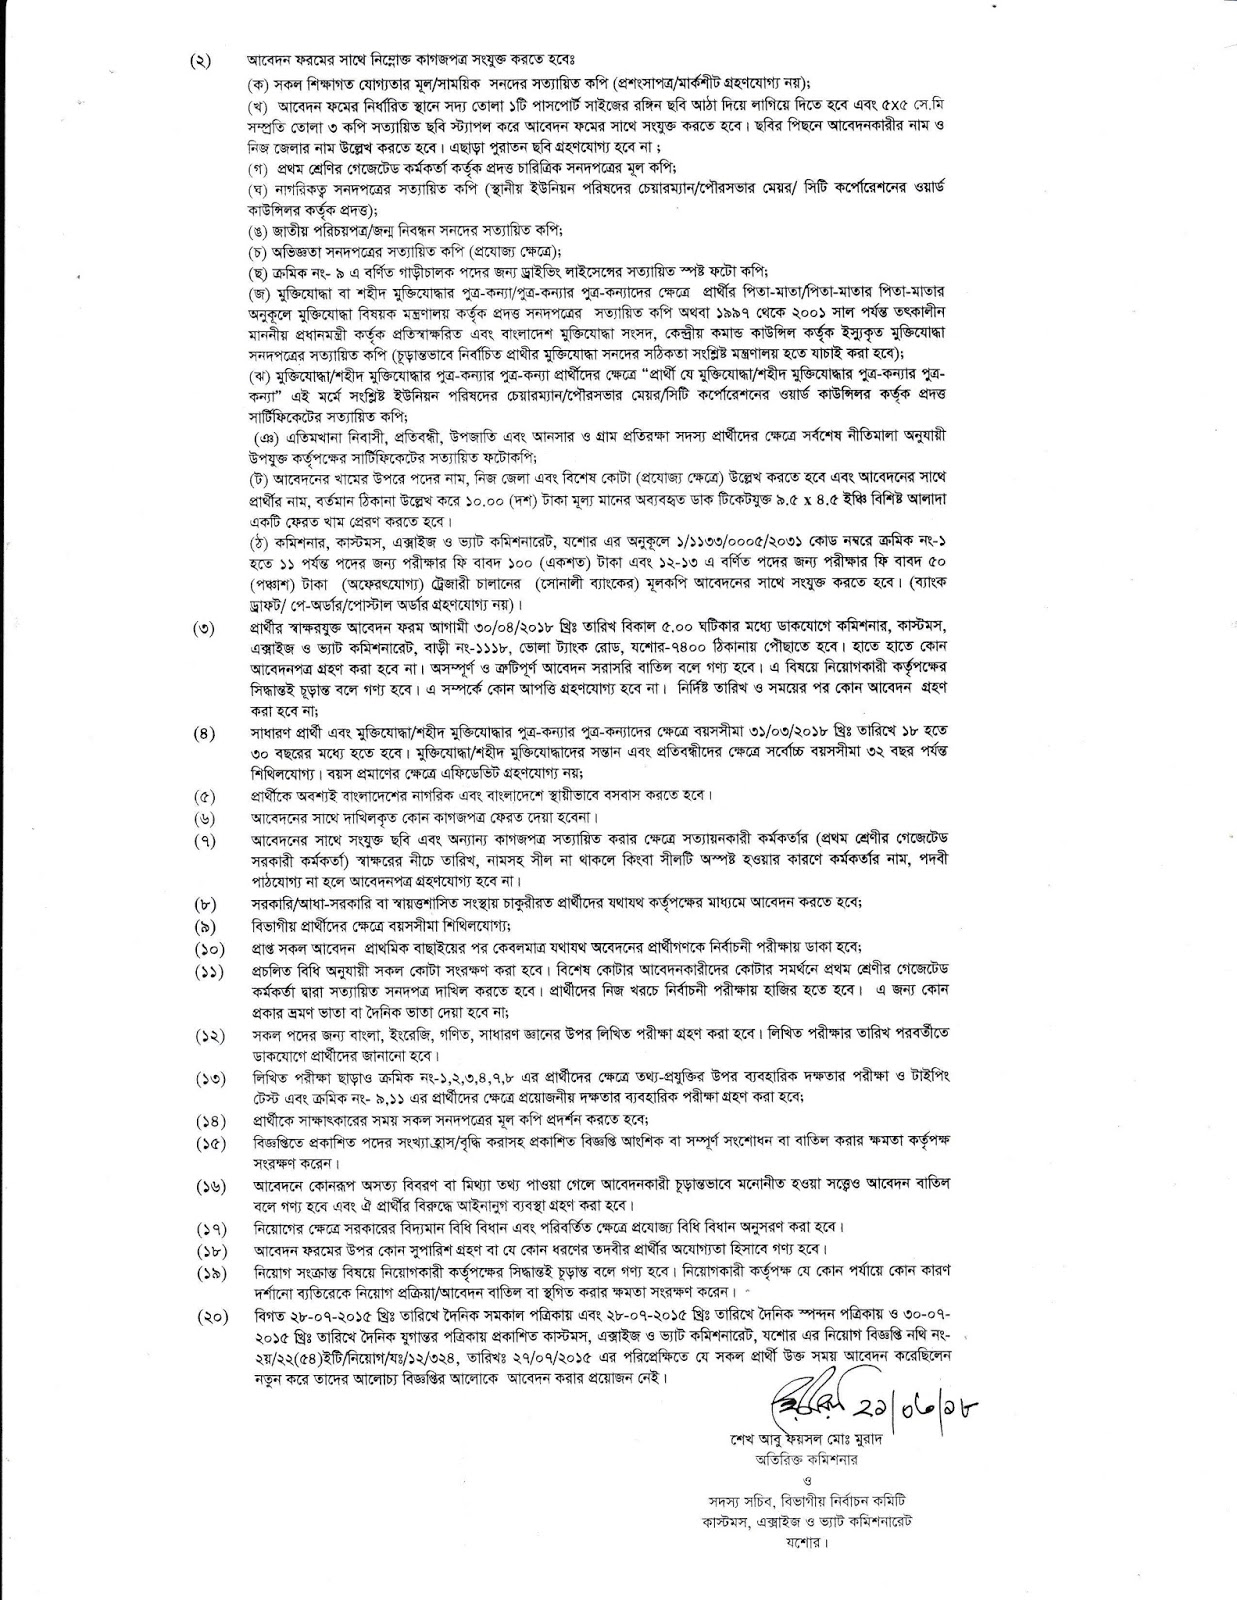 Customs, Excise and VAT commissionerate, Jessore Job Circular 2018